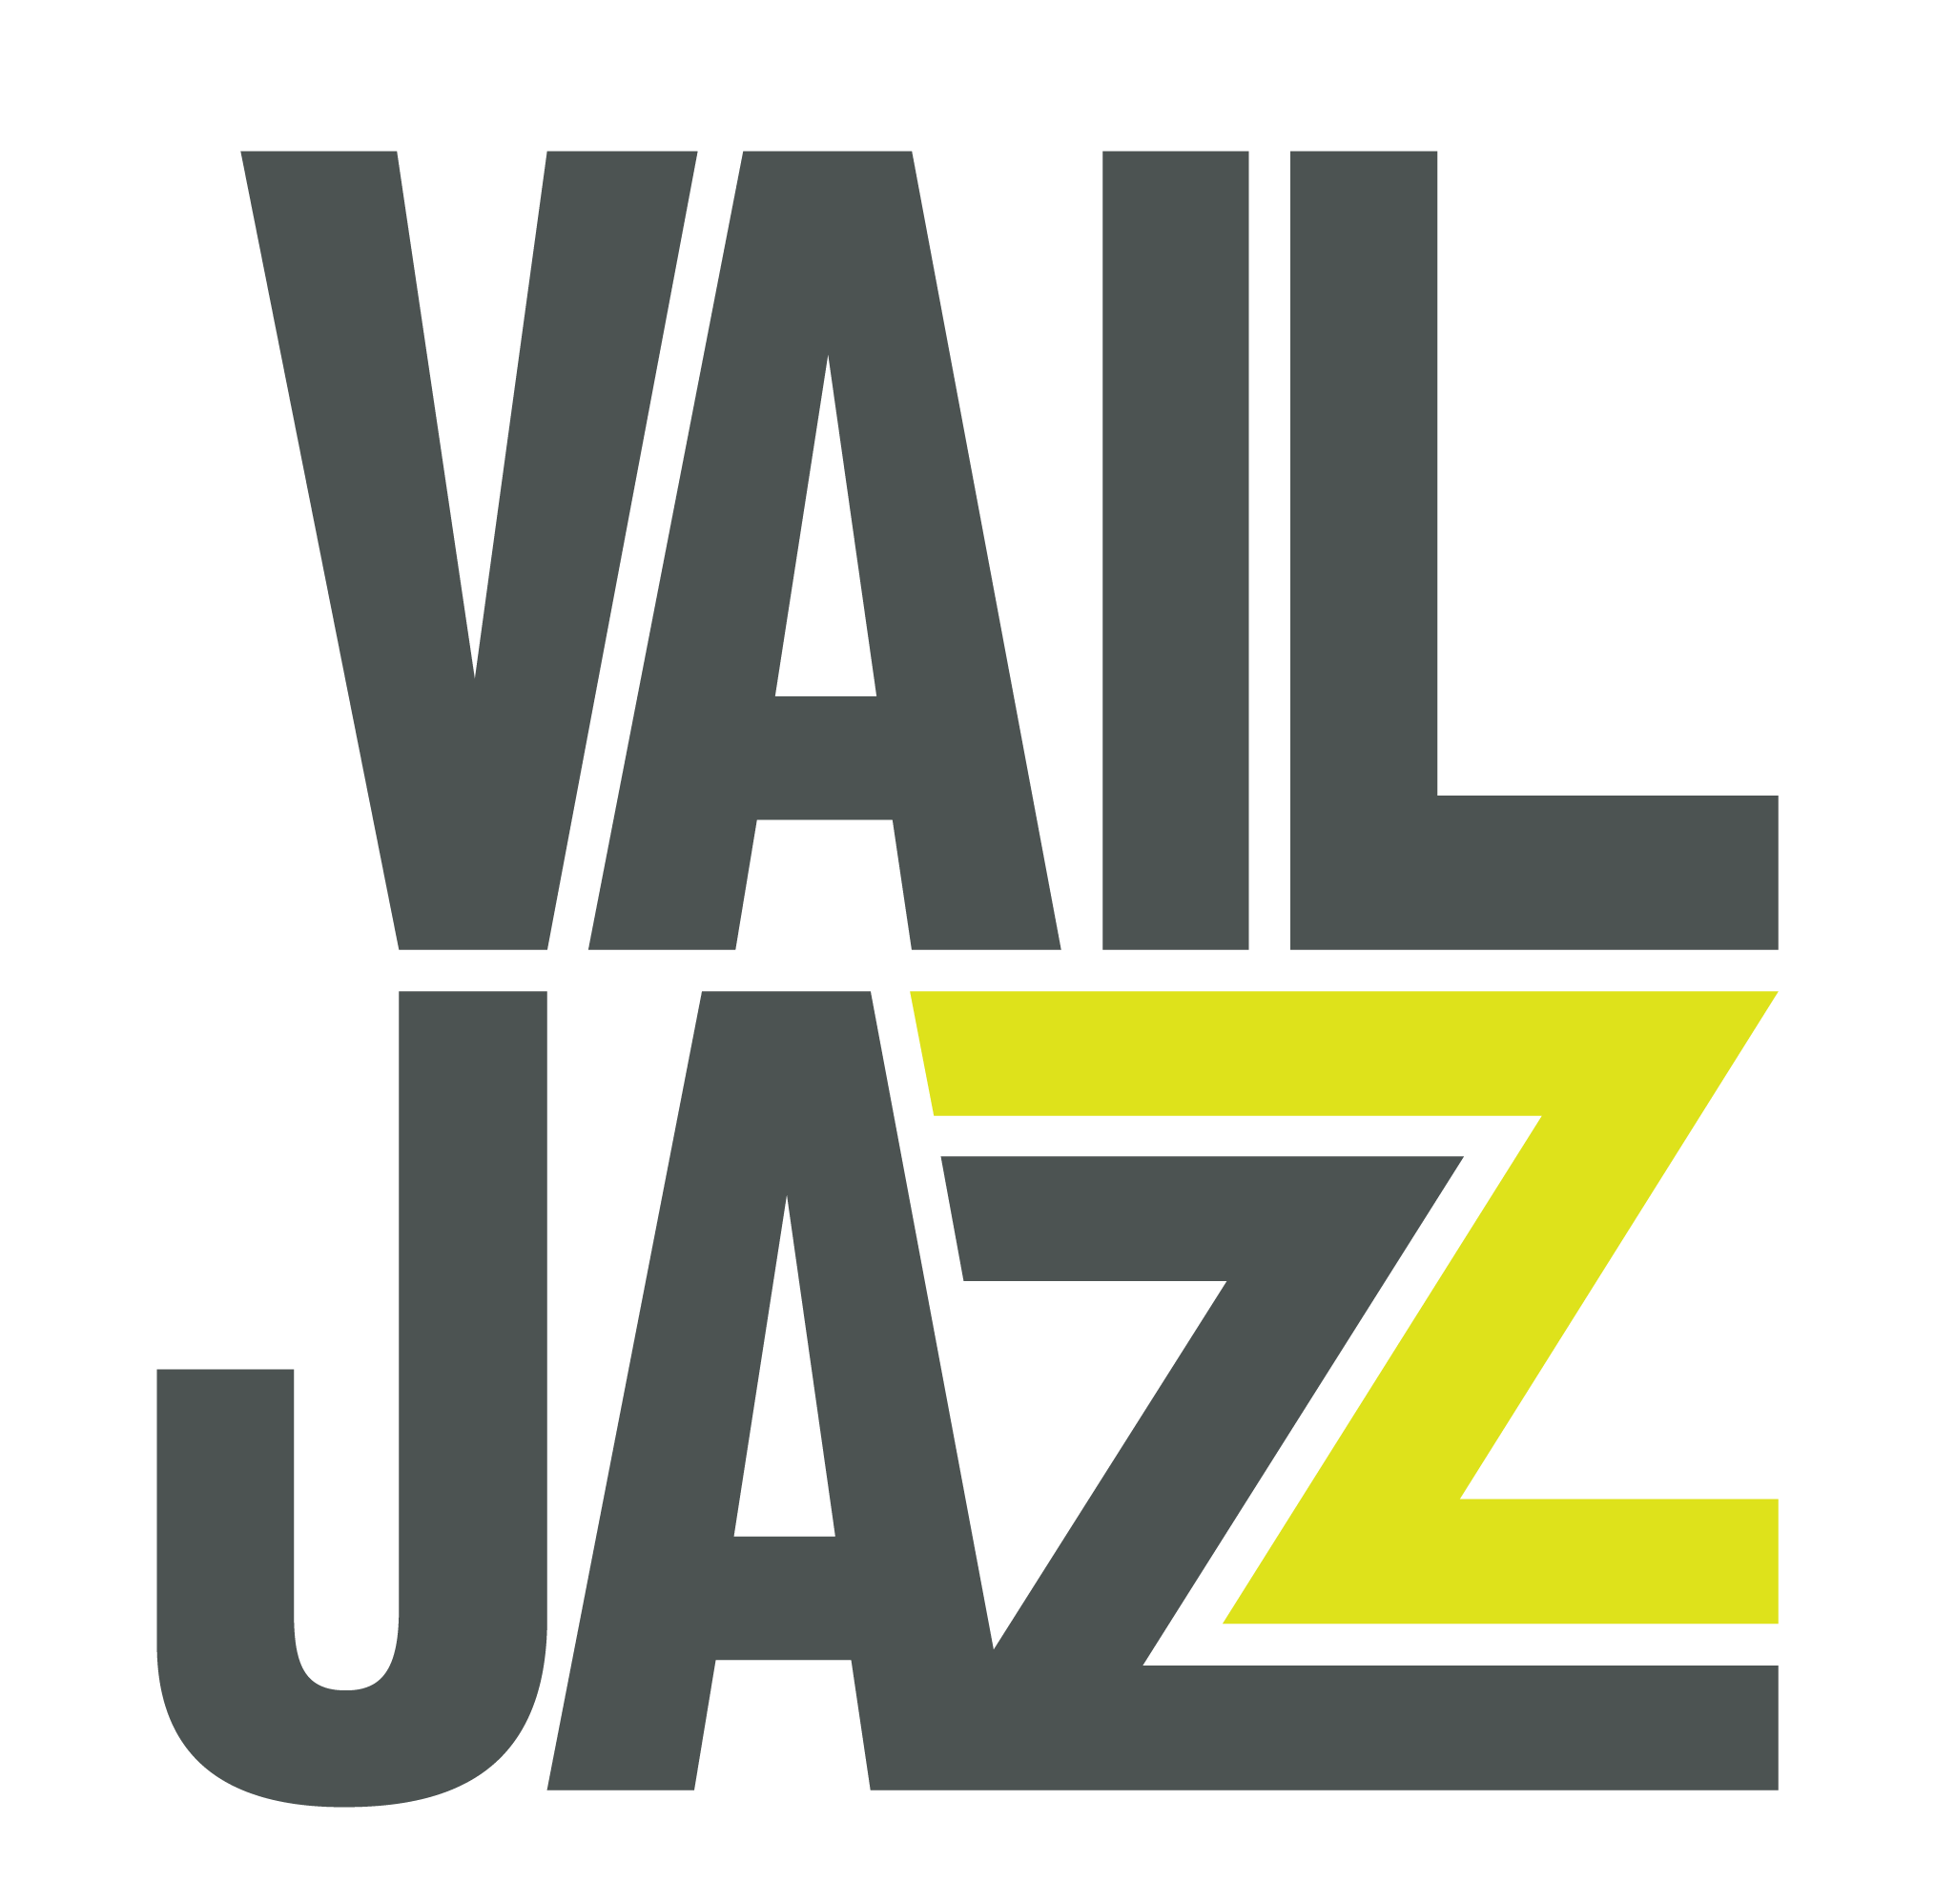 Internship at The Vail Jazz Foundation